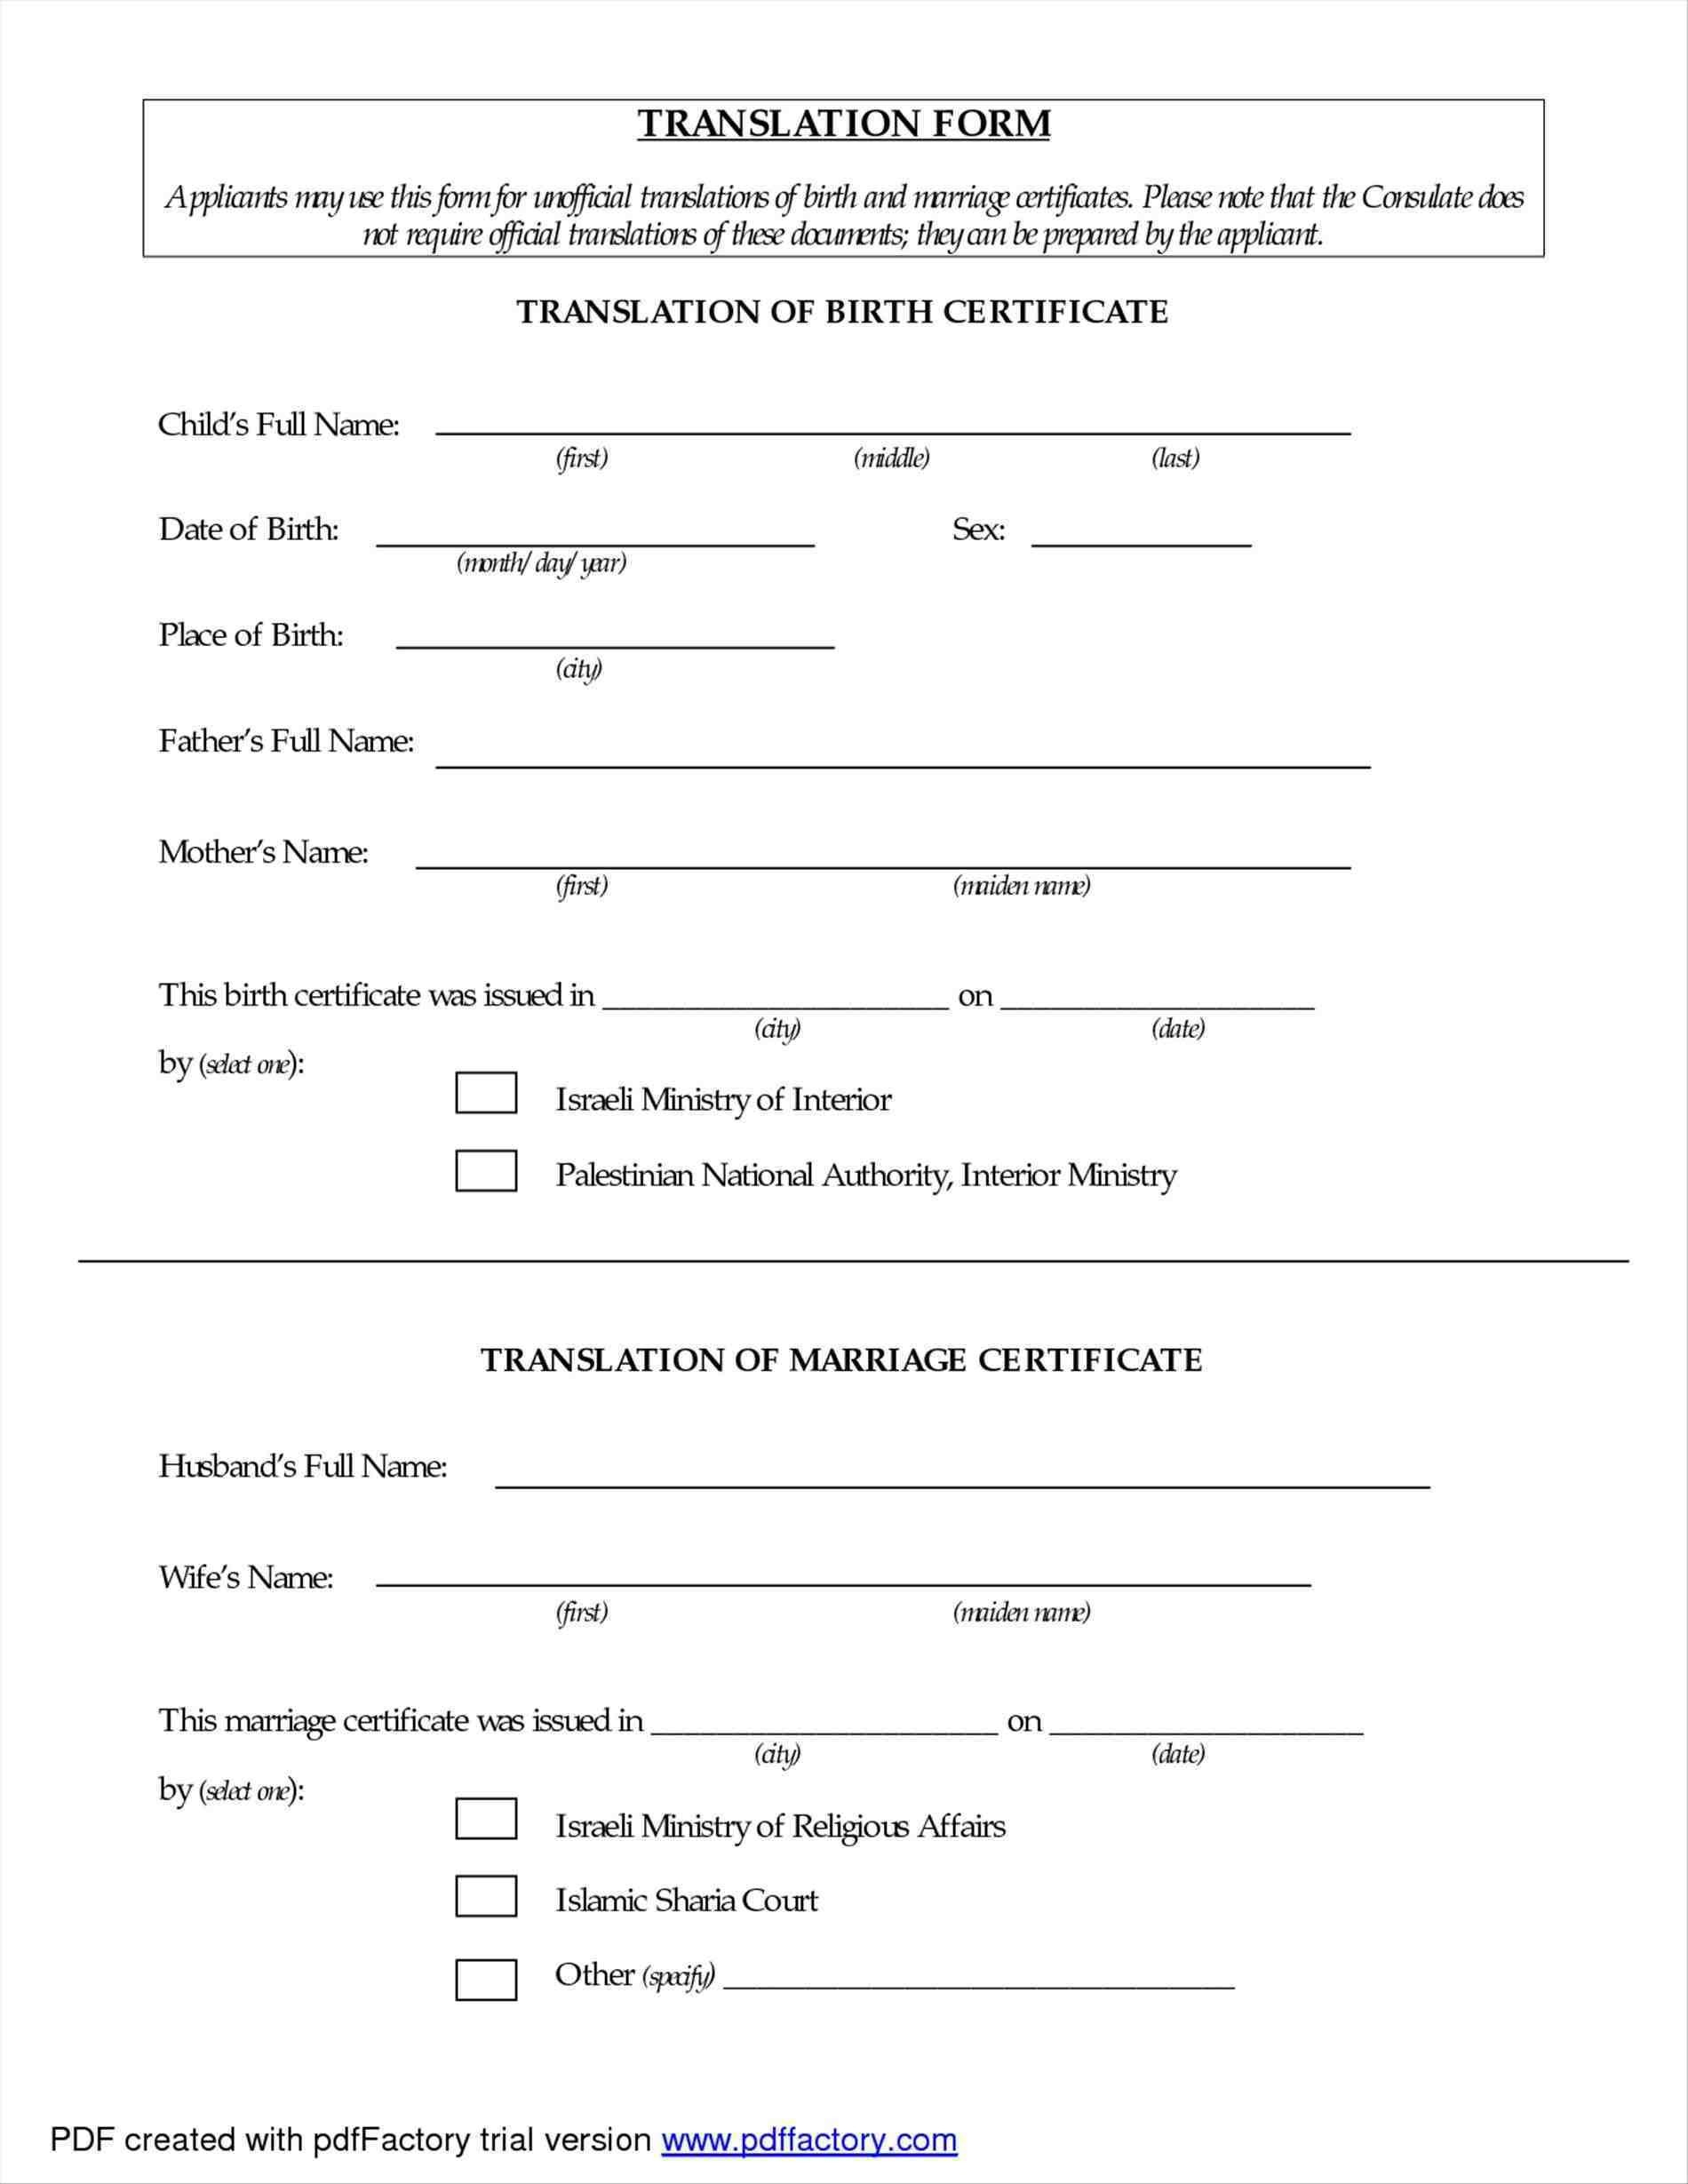 Mexican Marriage Certificate Template Brochure Templates Throughout Marriage Certificate Translation From Spanish To English Template